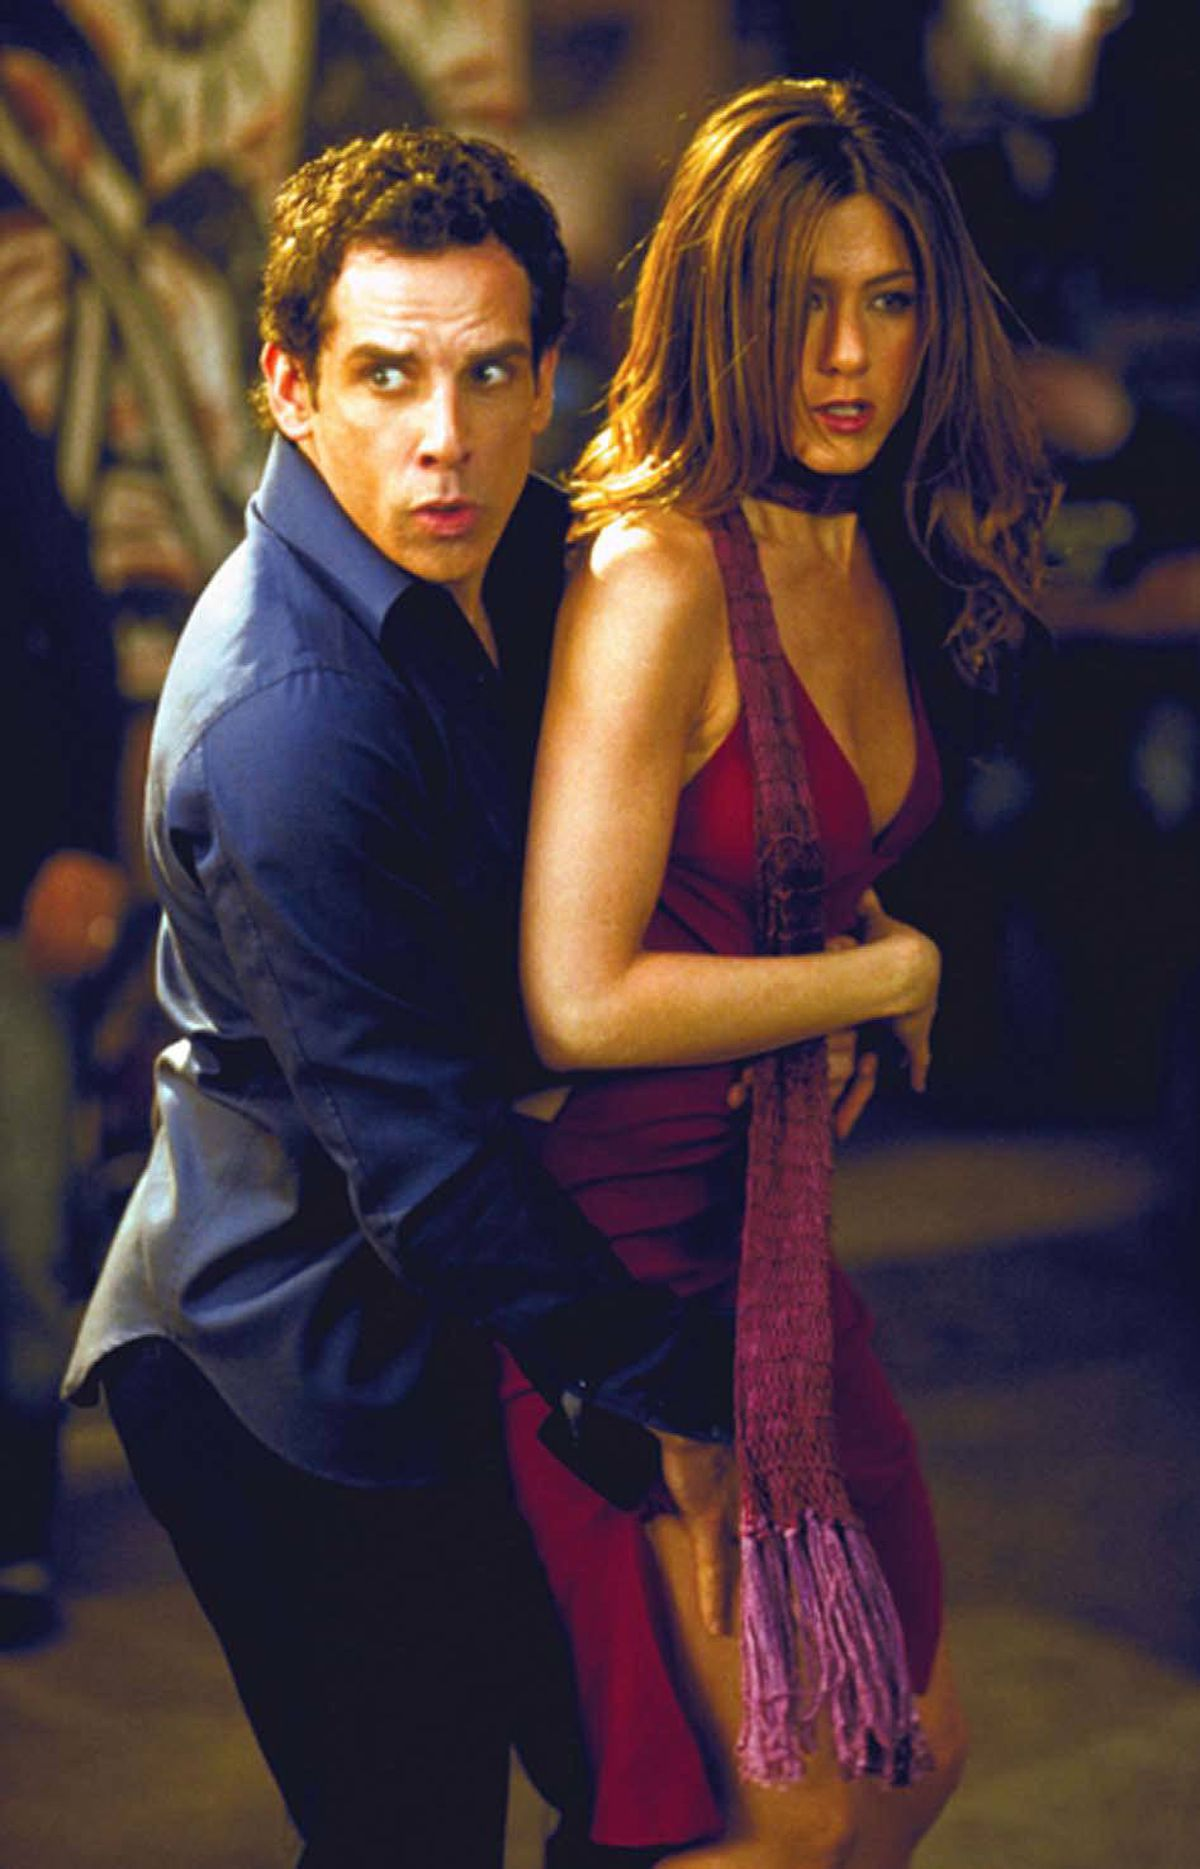 MOVIE Along Came Polly Vision, midnight ET; 9 p.m. PT Comedy veterans Ben Stiller and Jennifer Aniston make an amusingly odd couple in this 2004 romantic comedy. Stiller plays his usual nebbishy self as Reuben, a risk assessment expert whose new wife Lisa (Debra Messing) cheats on him the first day of their Caribbean honeymoon. Once back in New York, Reuben mopes around until he meets the free-spirited Polly, played by Aniston, who convinces him to try exciting new things, like Moroccan food and dance classes. The unlikely couple learn from their differences and slowly start falling in love – and then Lisa shows up looking to reconcile with Reuben. Oscar-winner Philip Seymour Hoffman is highly amusing as Stiller's artiste best friend.